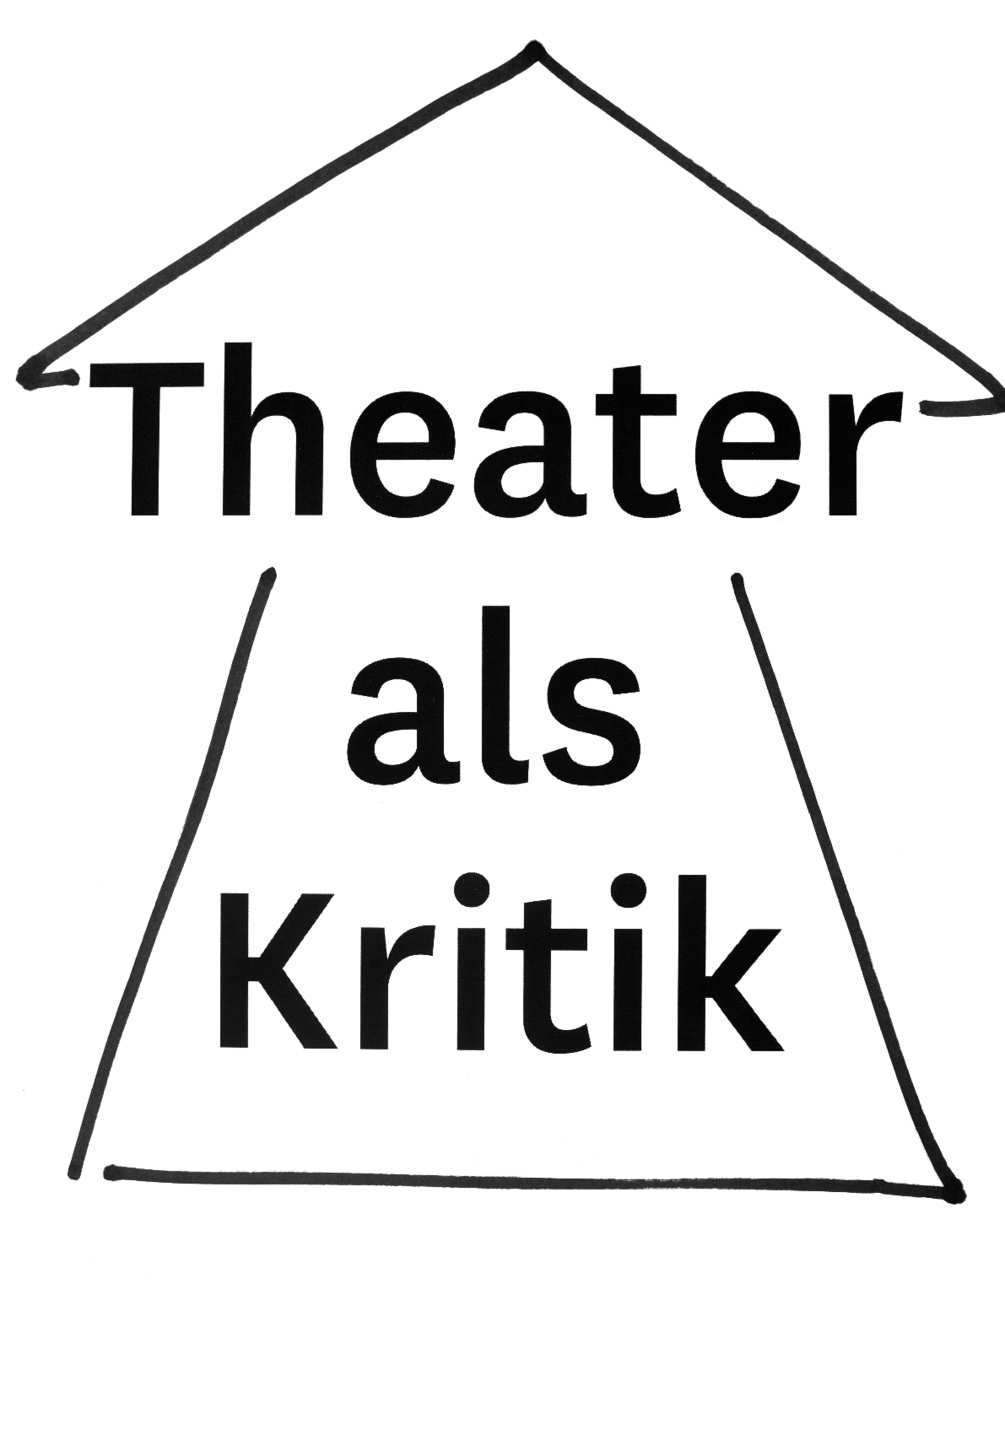 theater-as-critique-slip-09-1005x1435px